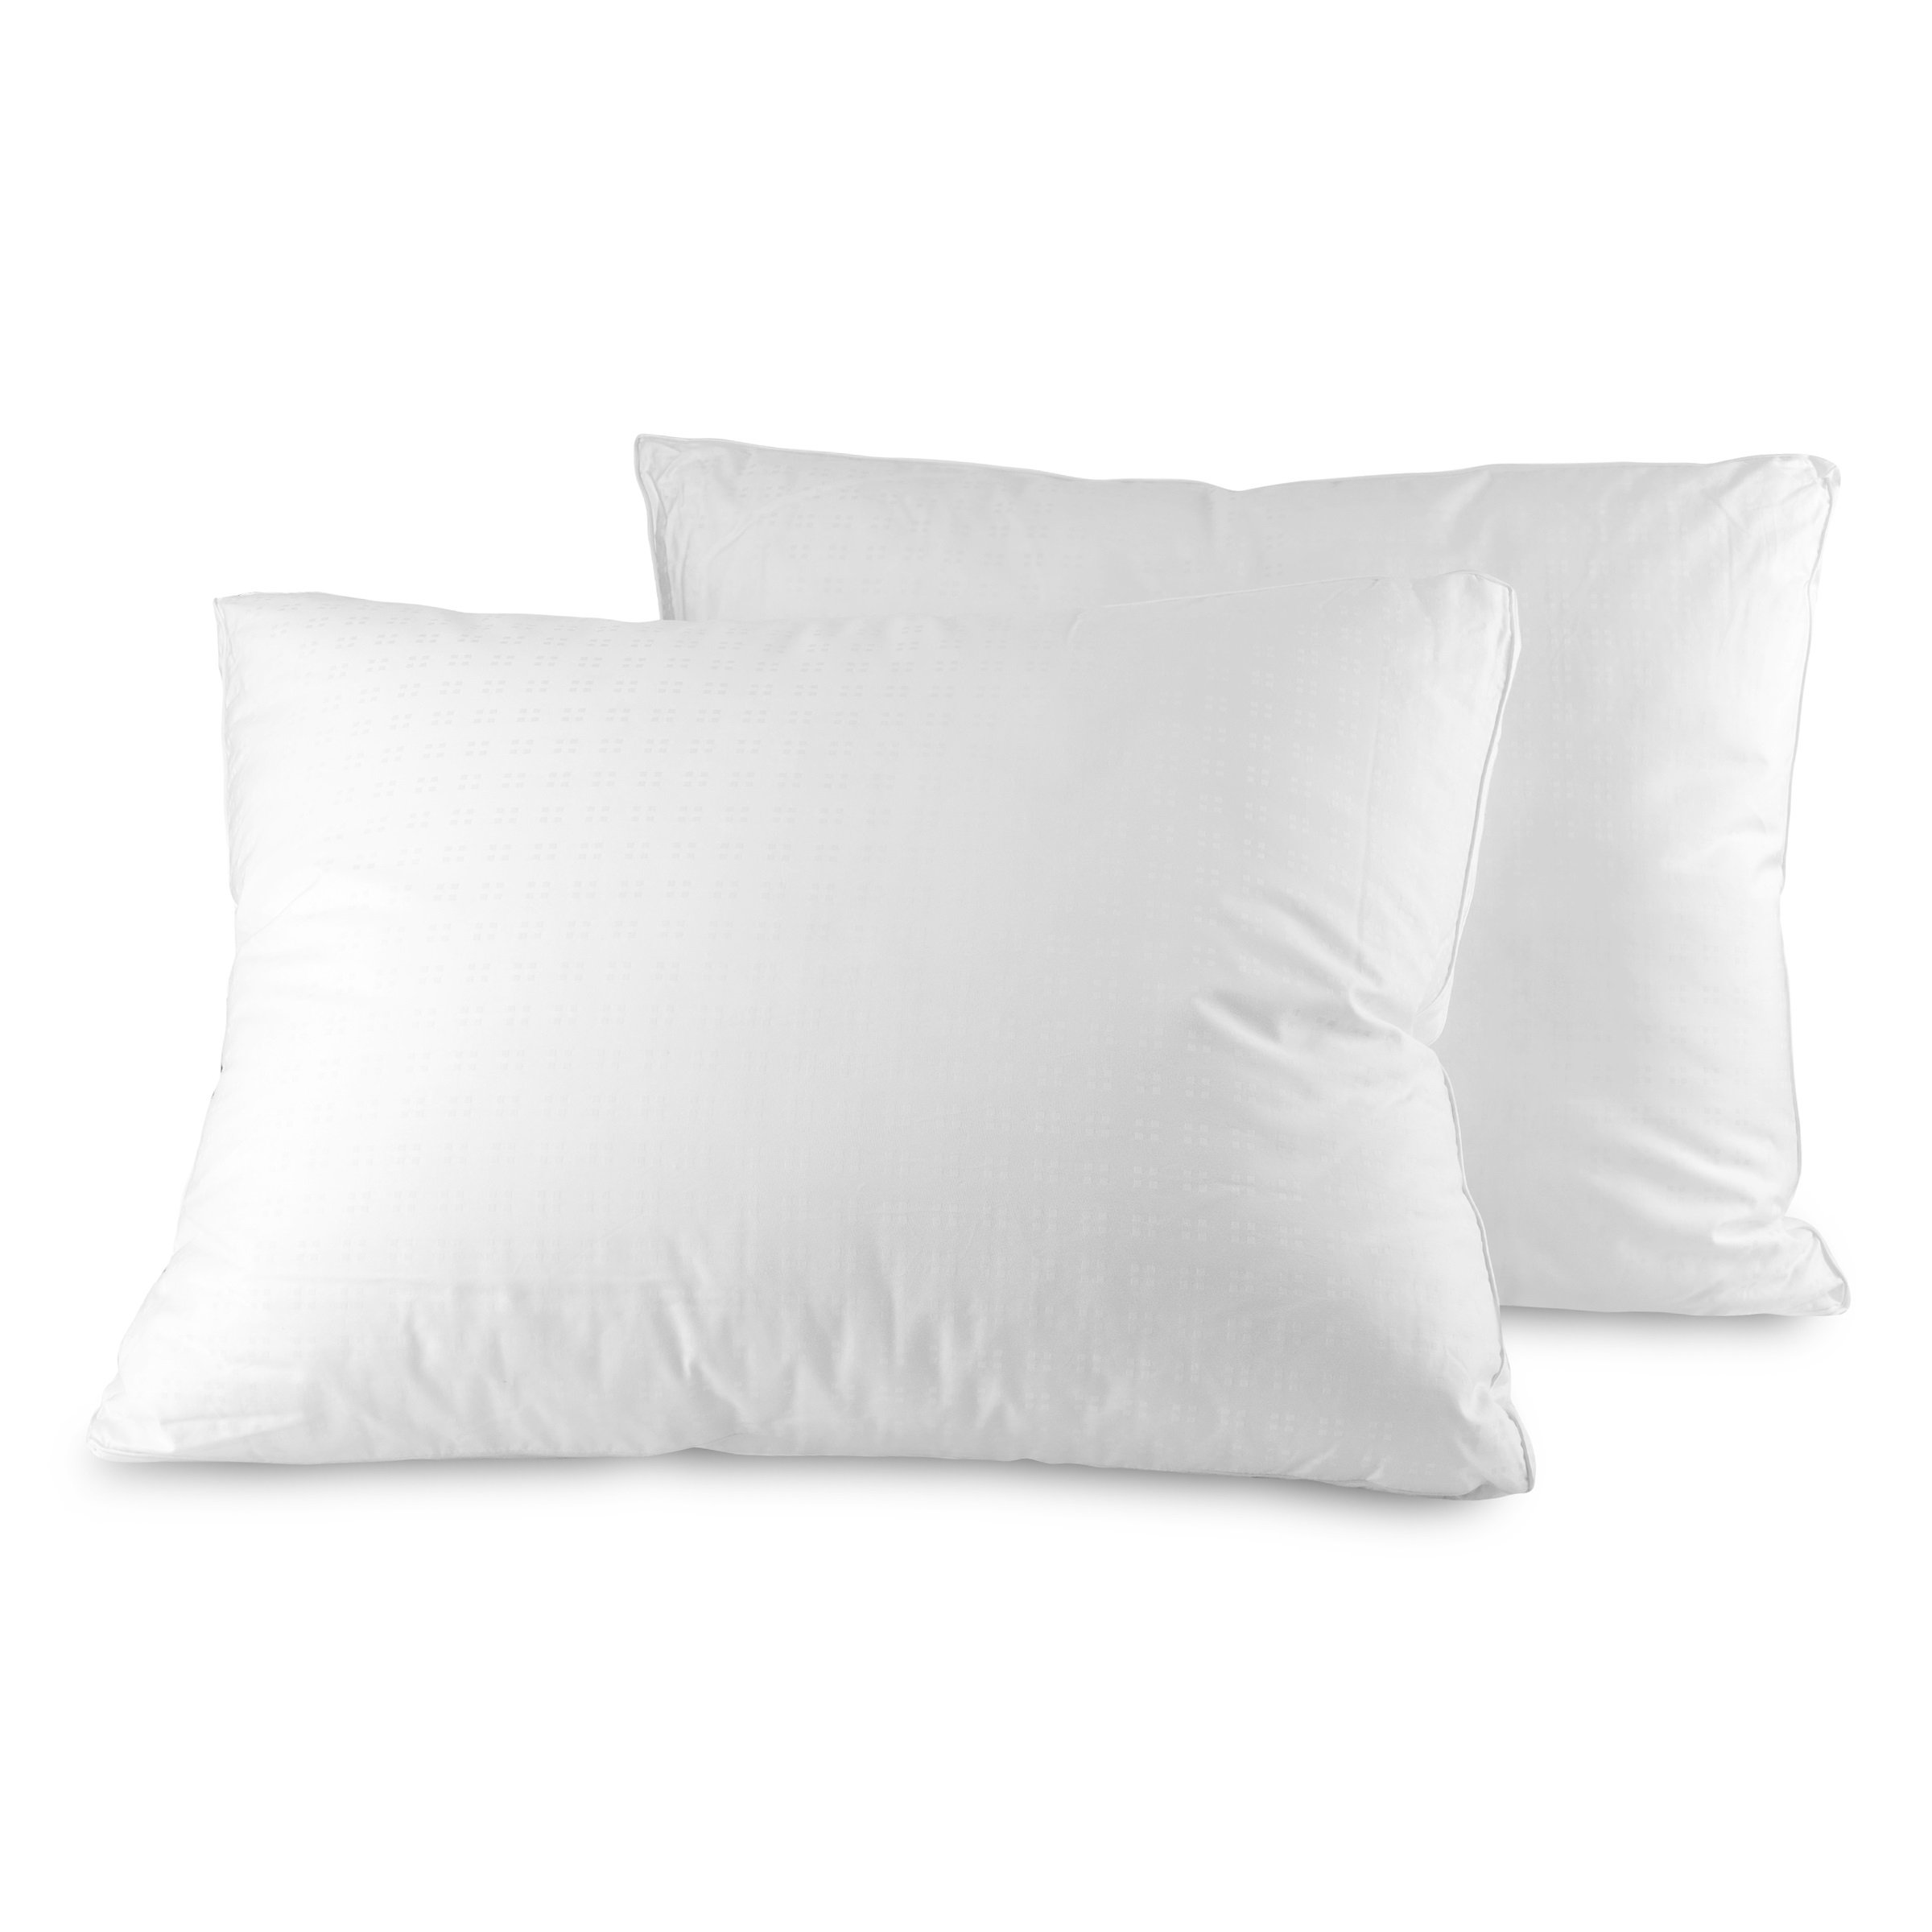 Down Alternative Pillows Cotton Cover Super Plush Microfiber Fill Hypoallergenic & Allergy Safe Bed Pillows (2 Pack) Soft and Breathable Sleeping Pillows King Size (20x36x1.5)